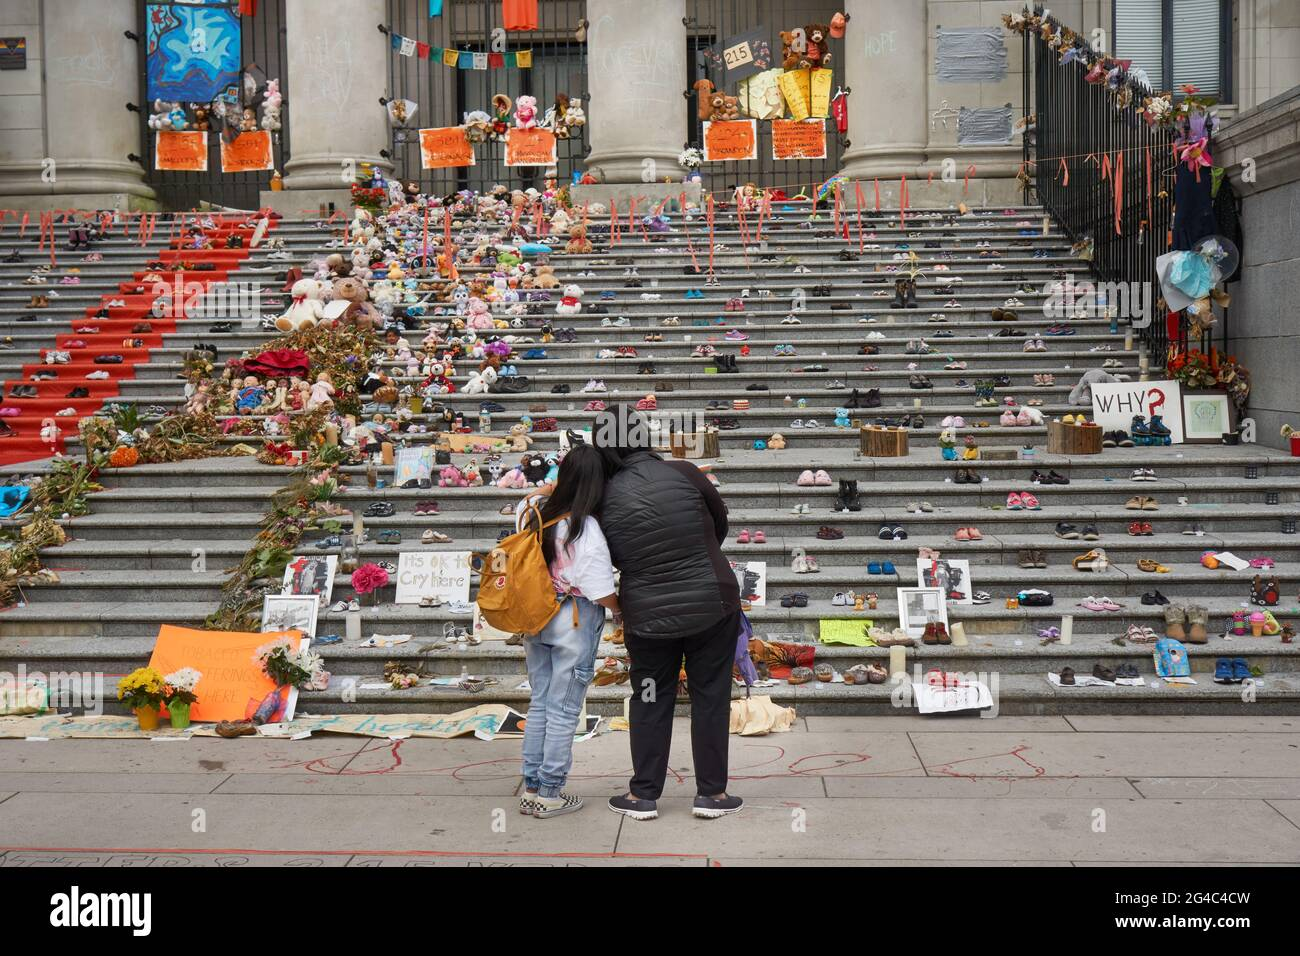 vancouver-british-columbia-canada-june-19-2021-haida-artist-tamara-bells-installation-of-215-pairs-of-shoes-on-the-steps-of-the-vancouver-art-gallery-has-become-a-makeshift-shrine-this-installation-honours-the-215-indigenous-children-whose-unmarked-graves-were-discovered-on-the-grounds-of-a-former-residential-school-in-kamloops-british-columbia-canada-2G4C4CW.jpg